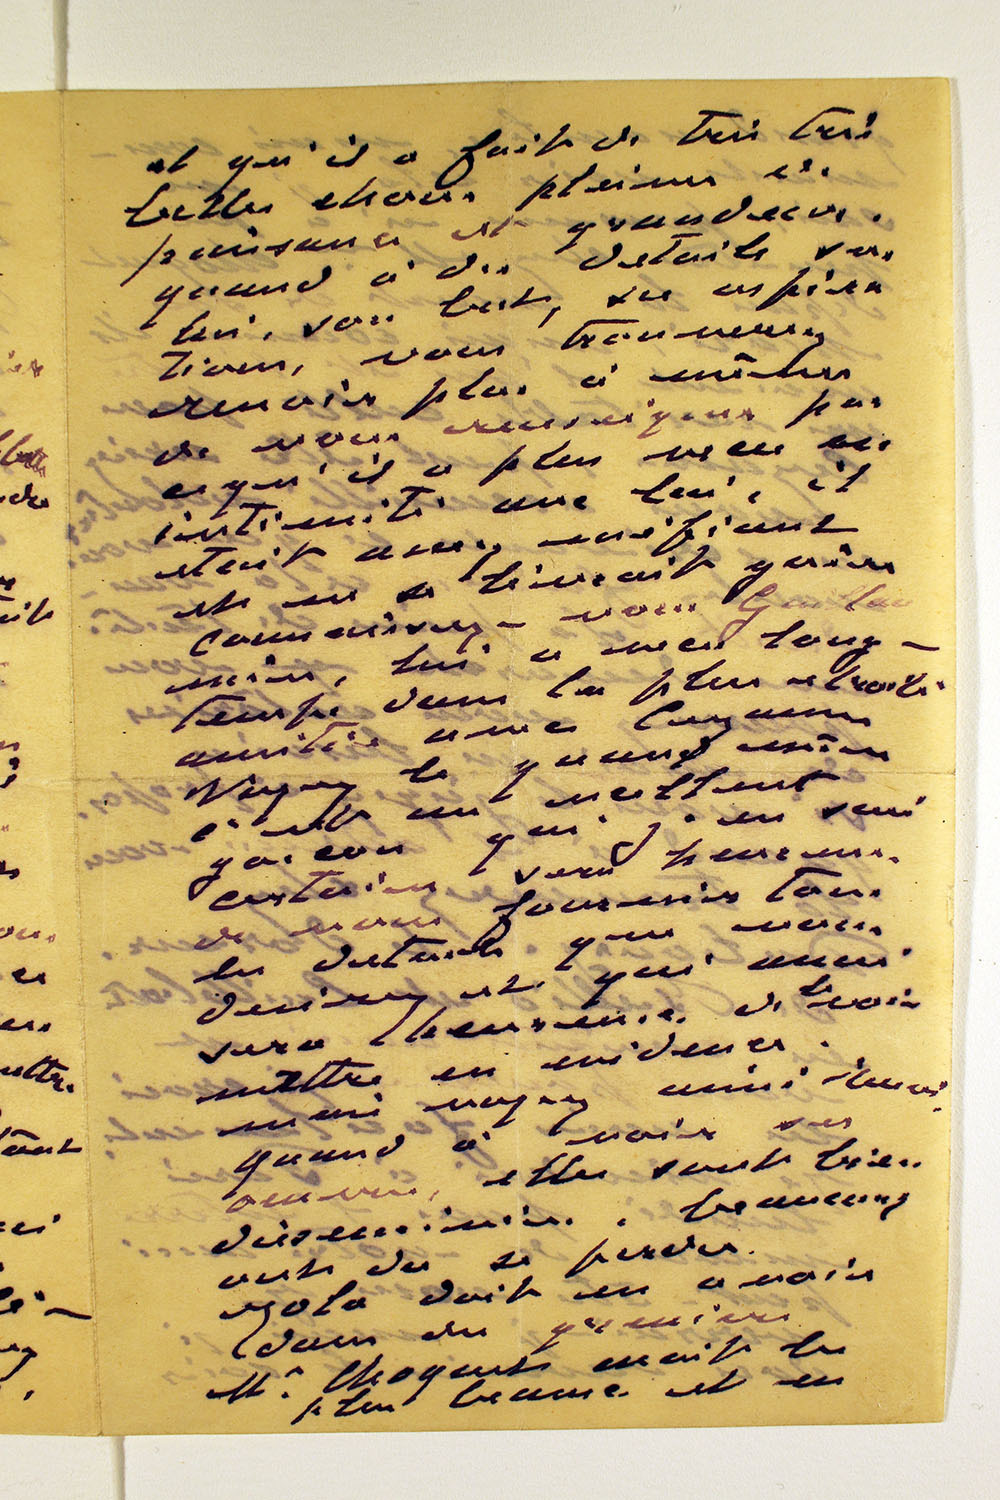 Page two of letter from Claude Monet to unknown recipient, February 24, 1894